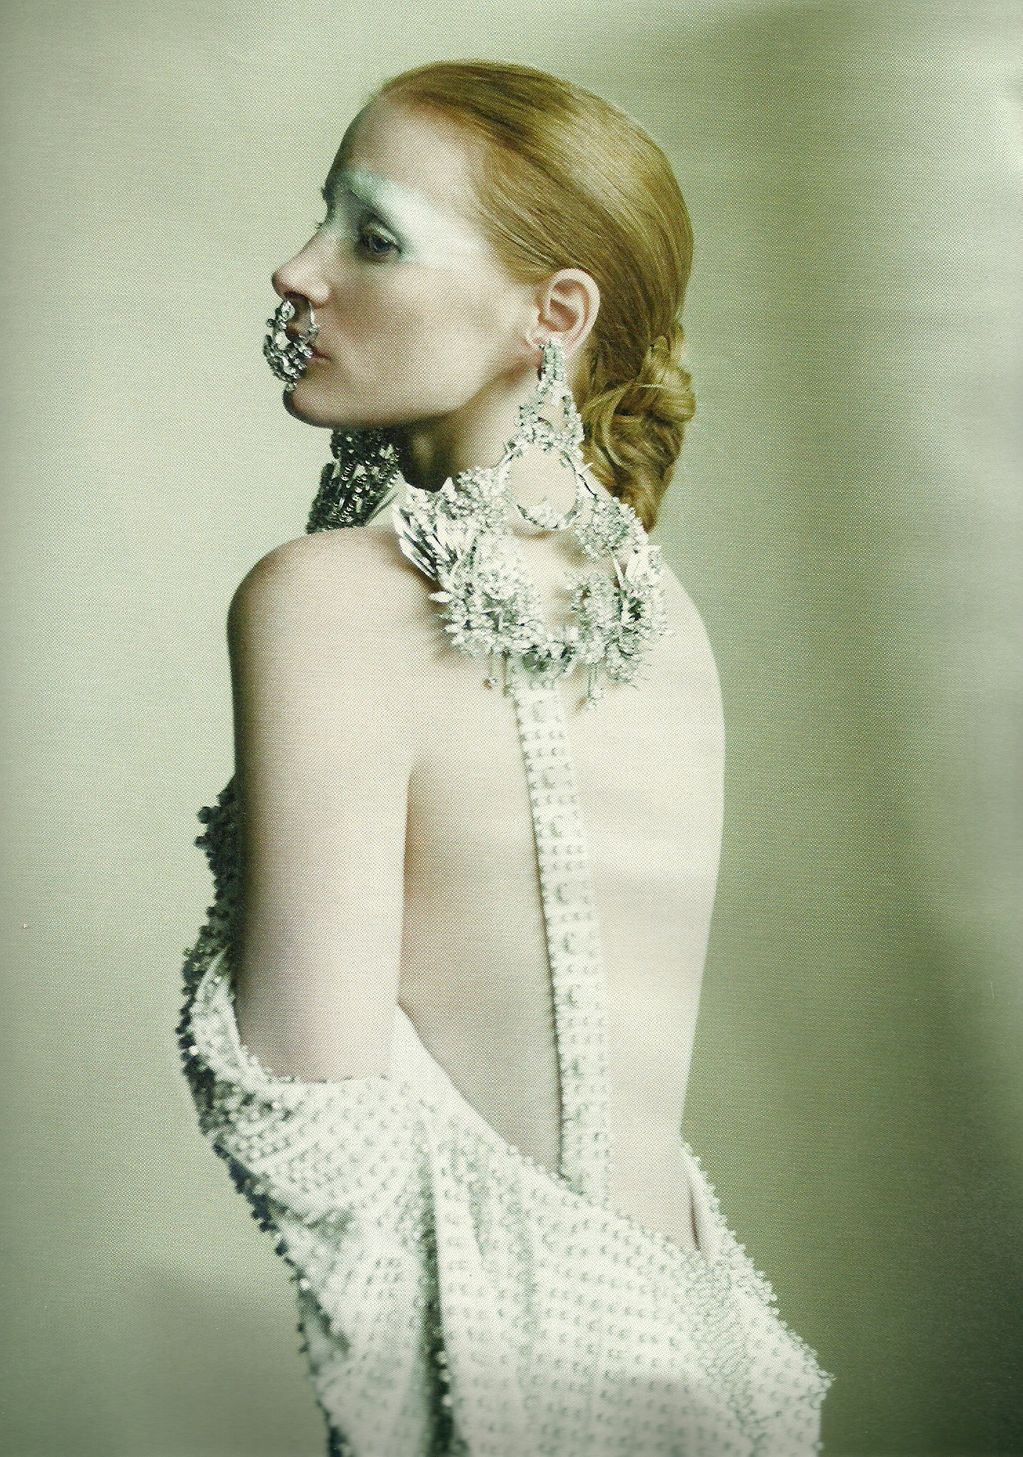 Jessica Chastain photographed by Paolo Roversi for W Magazine, May 2012